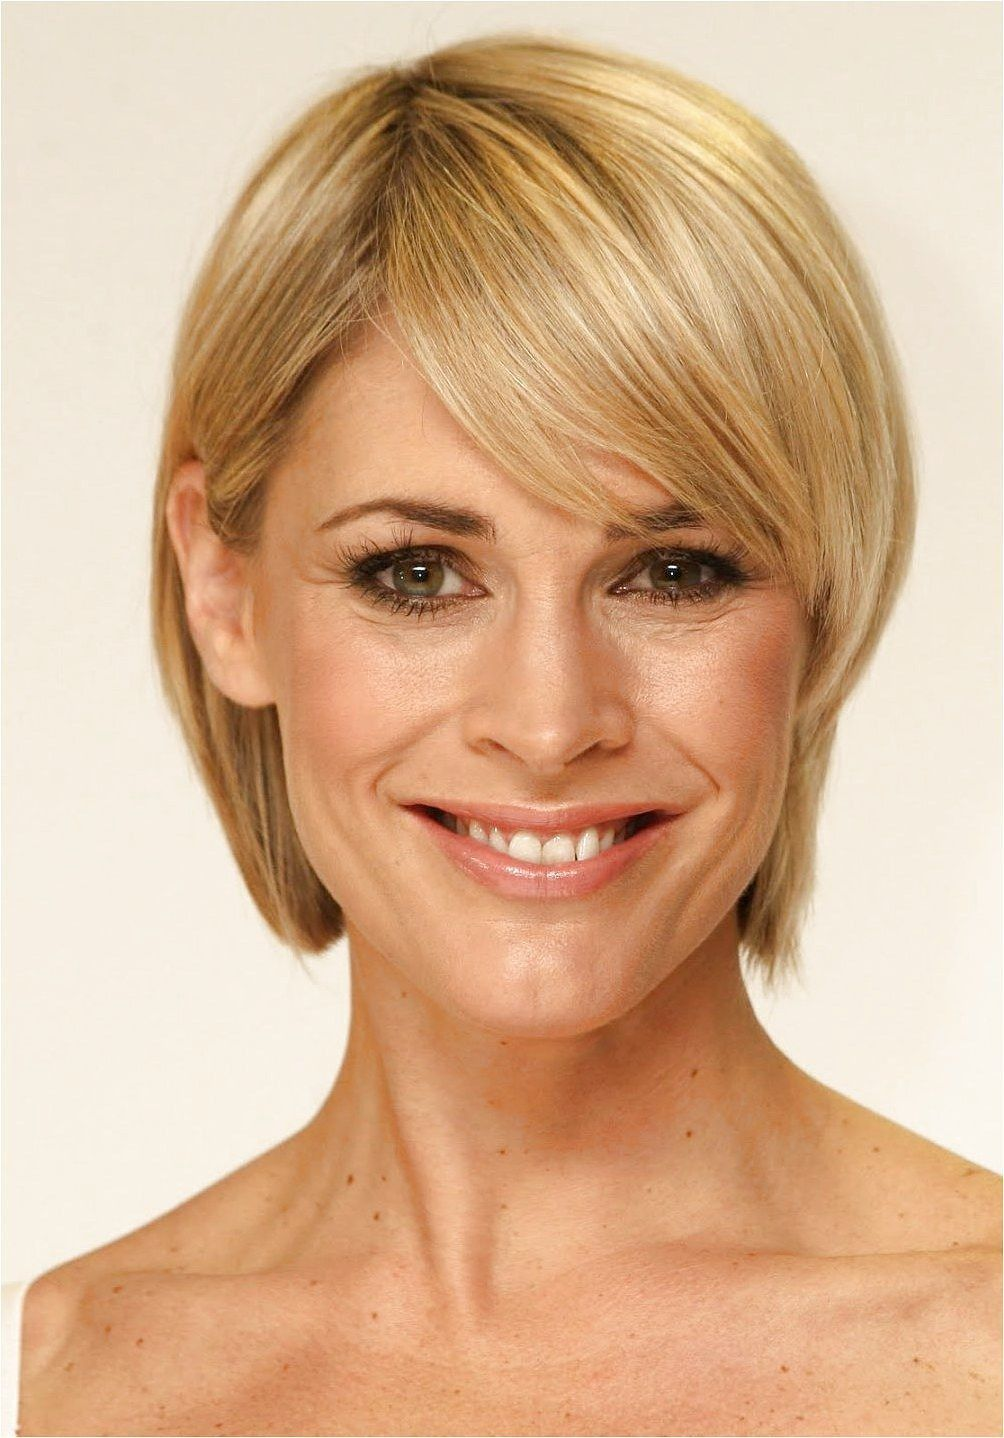 Hairstyles For Women Over 40 With Fine Hair Edgyshorthairstyles Continue Reading By Clicking The In 2020 Long Face Hairstyles Oval Face Hairstyles Short Thin Hair